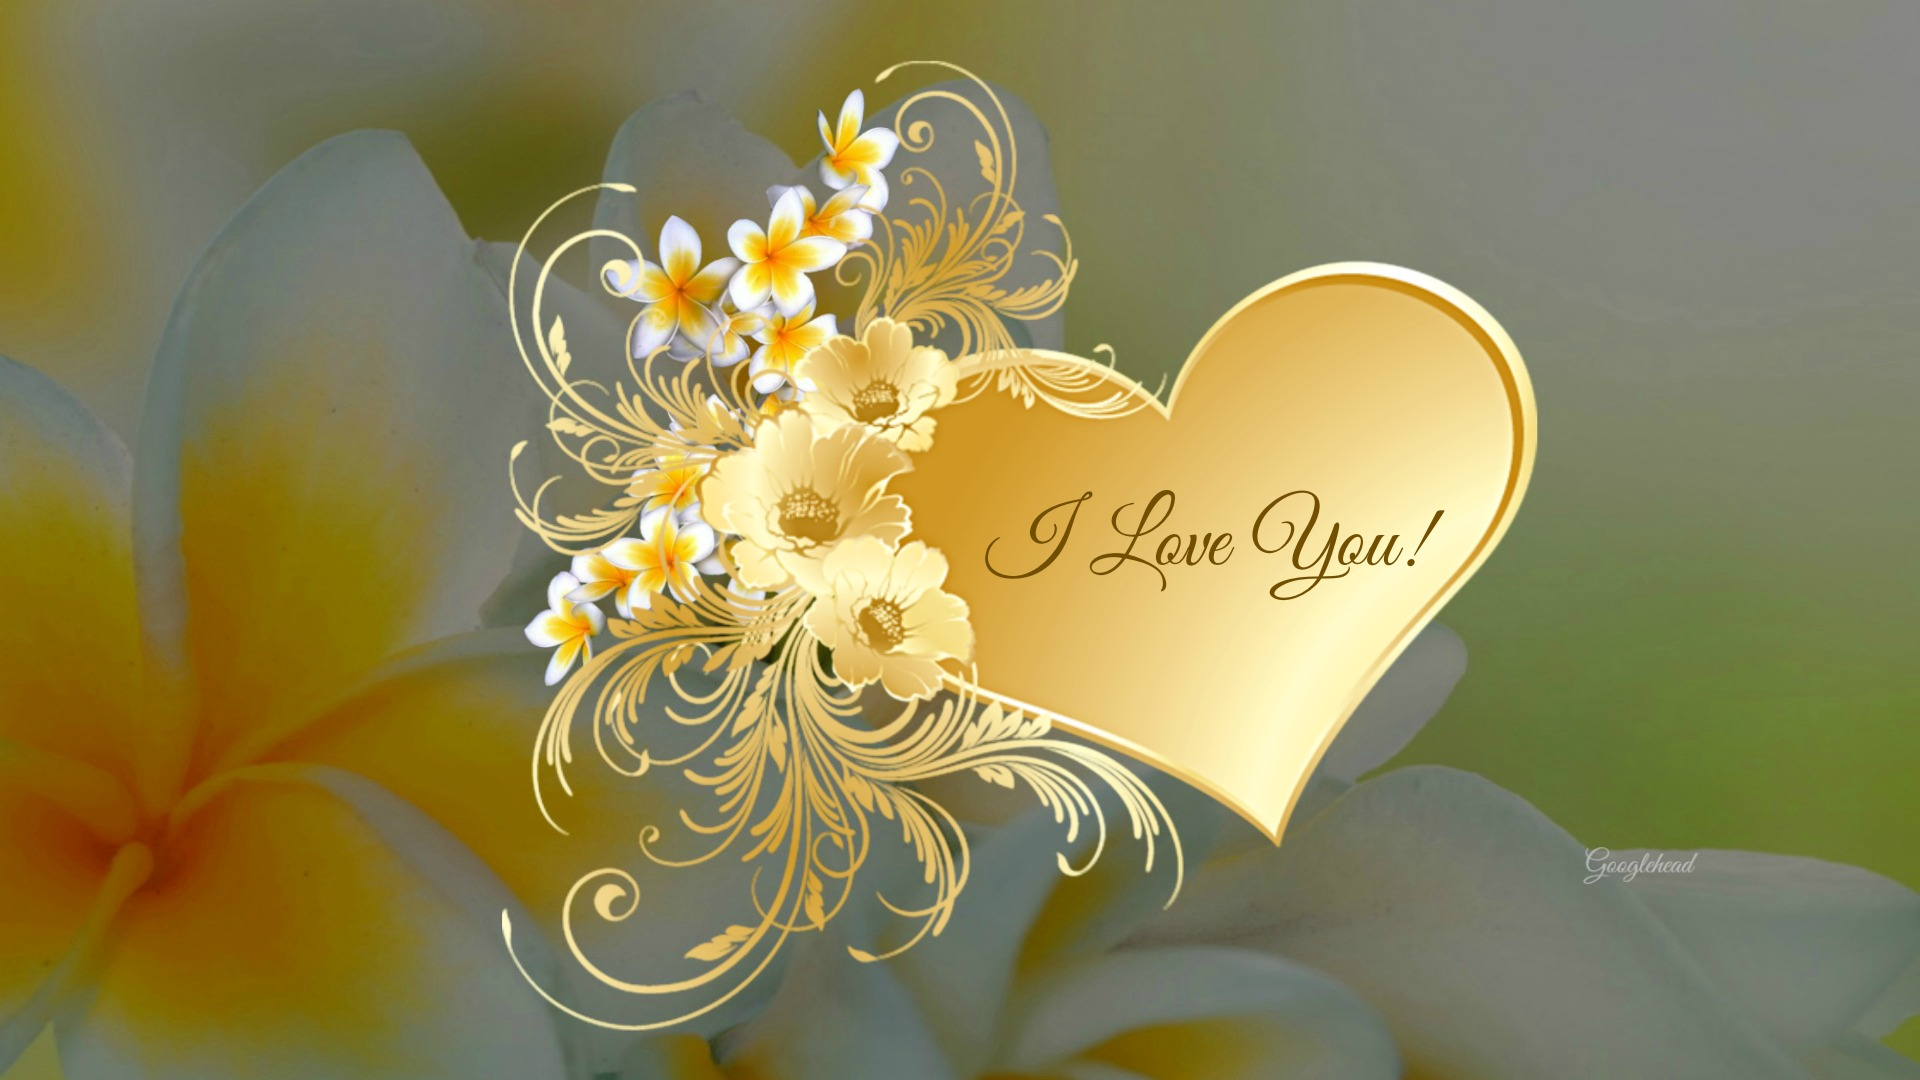 I Love You Images Hd Wallpapers (33 Wallpapers) Adorable Wallpapers